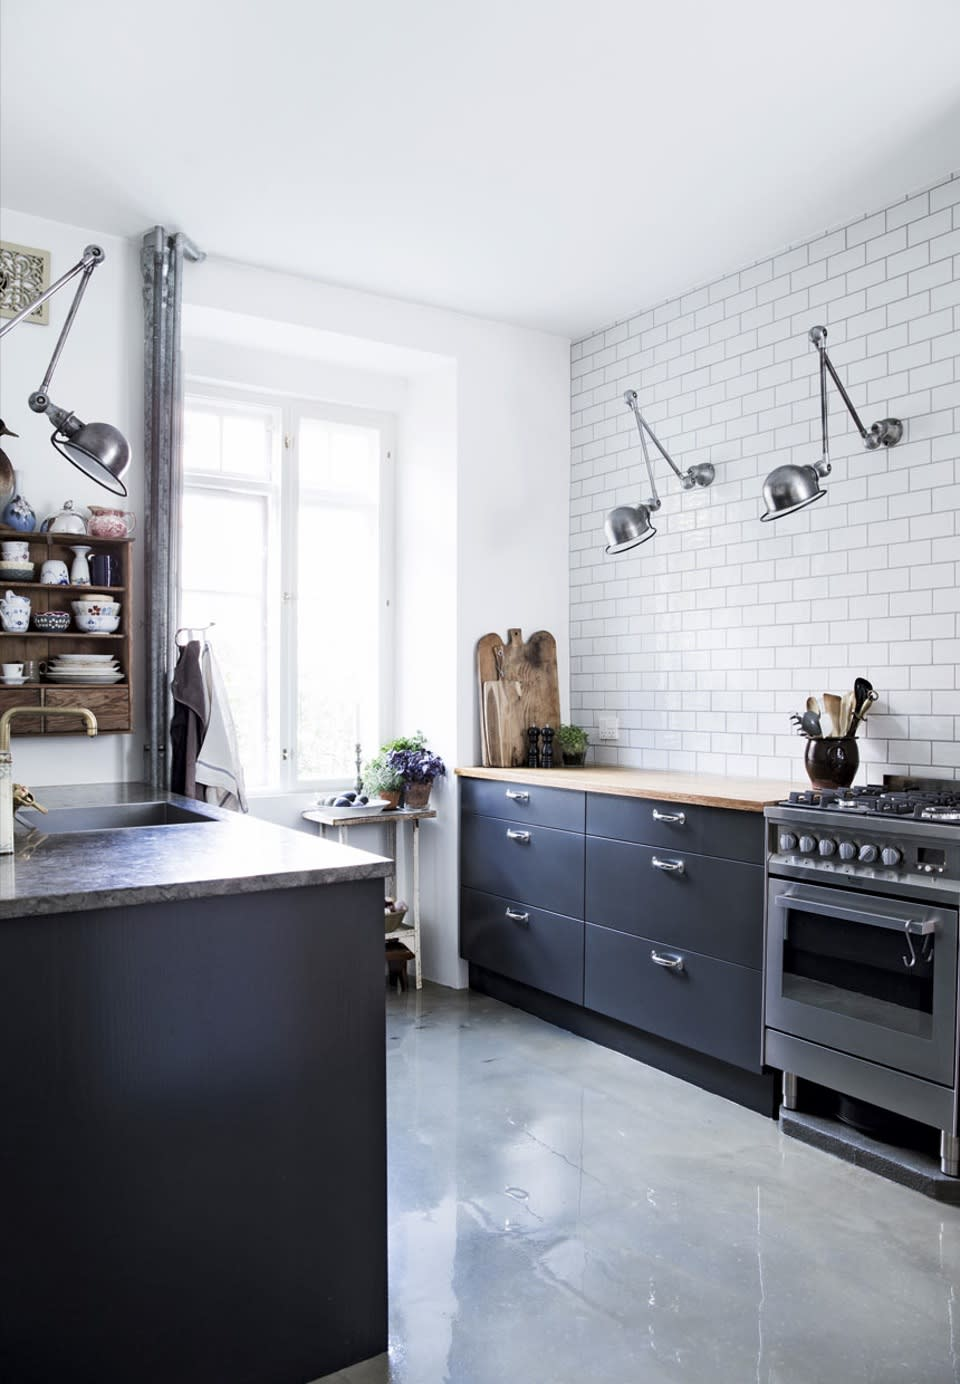 Kitchens Without Upper Cabinets Should You Go Without